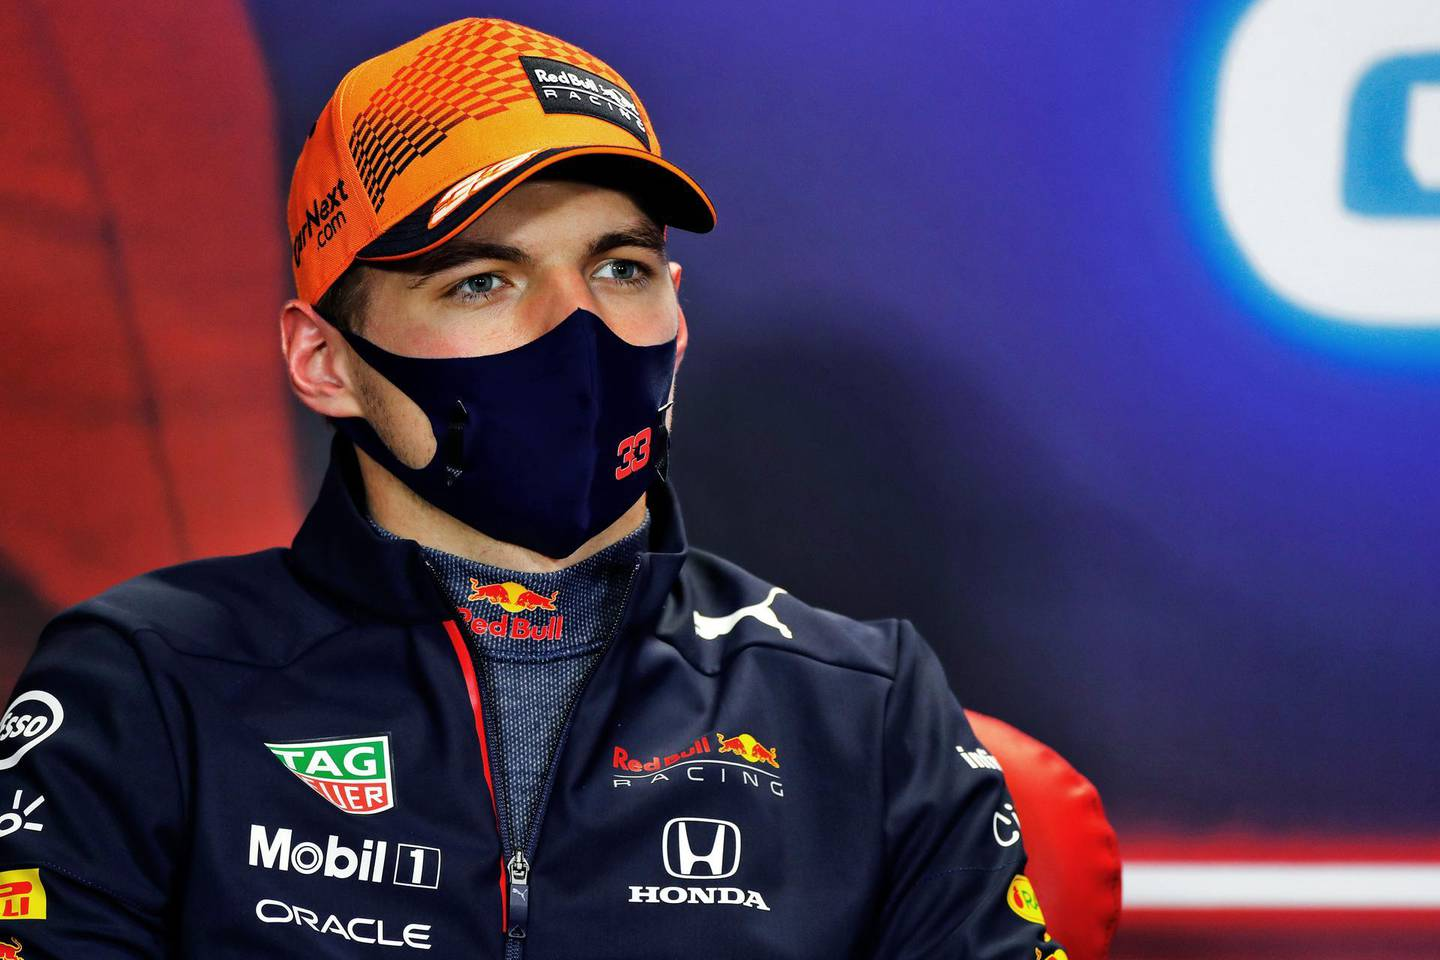 PORTIMAO, PORTUGAL - MAY 02: Second placed Max Verstappen of Netherlands and Red Bull Racing talks during a Press Conference after the F1 Grand Prix of Portugal at Autodromo Internacional Do Algarve on May 02, 2021 in Portimao, Portugal. (Photo by Al Staley - Pool/Getty Images)